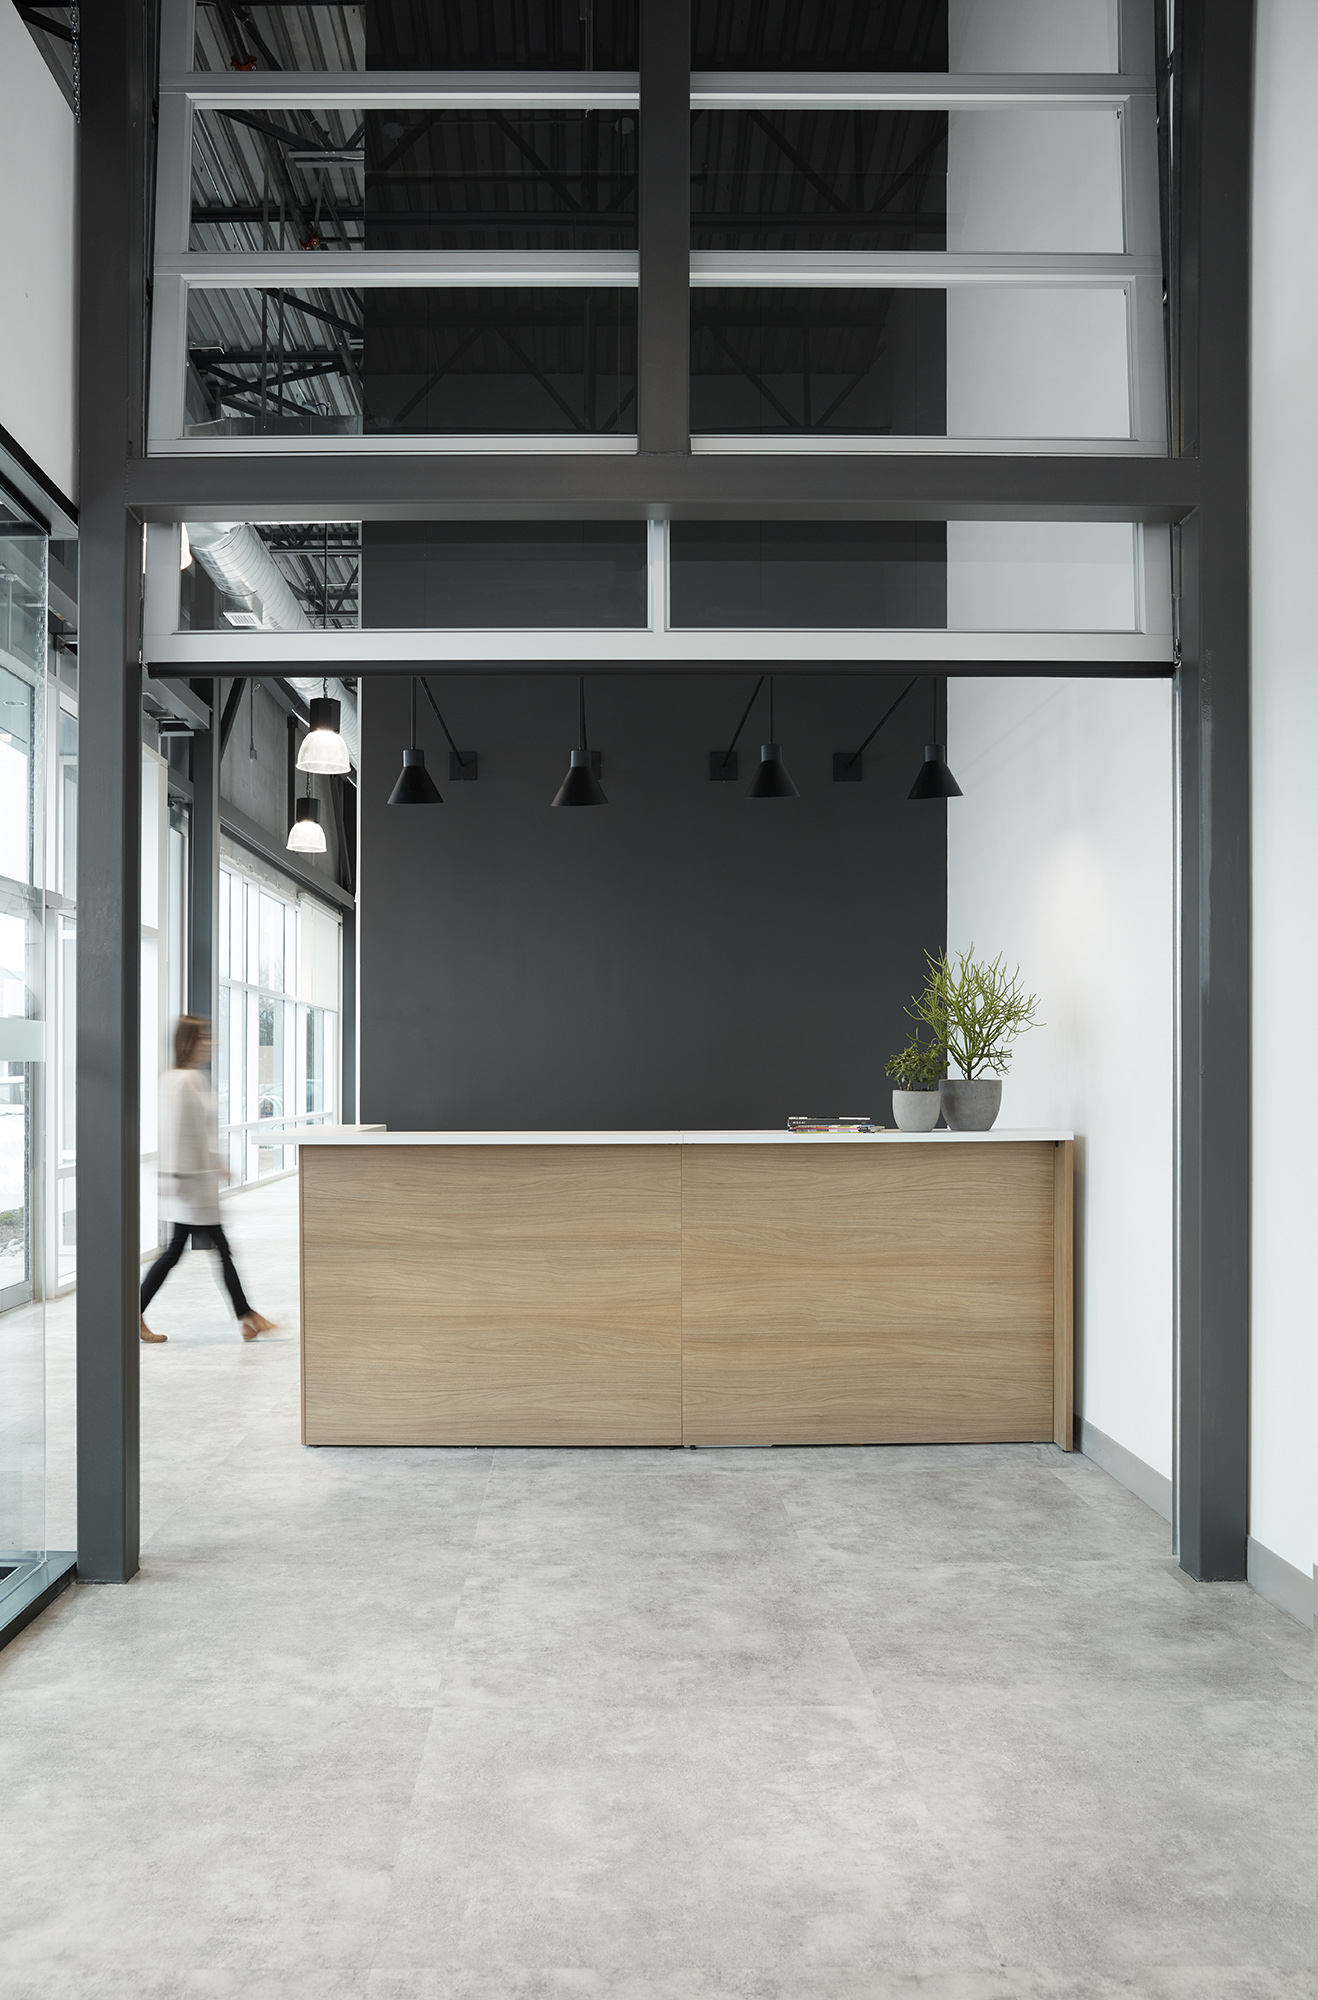 Reception Area with polished concrete floors and garage-style door.